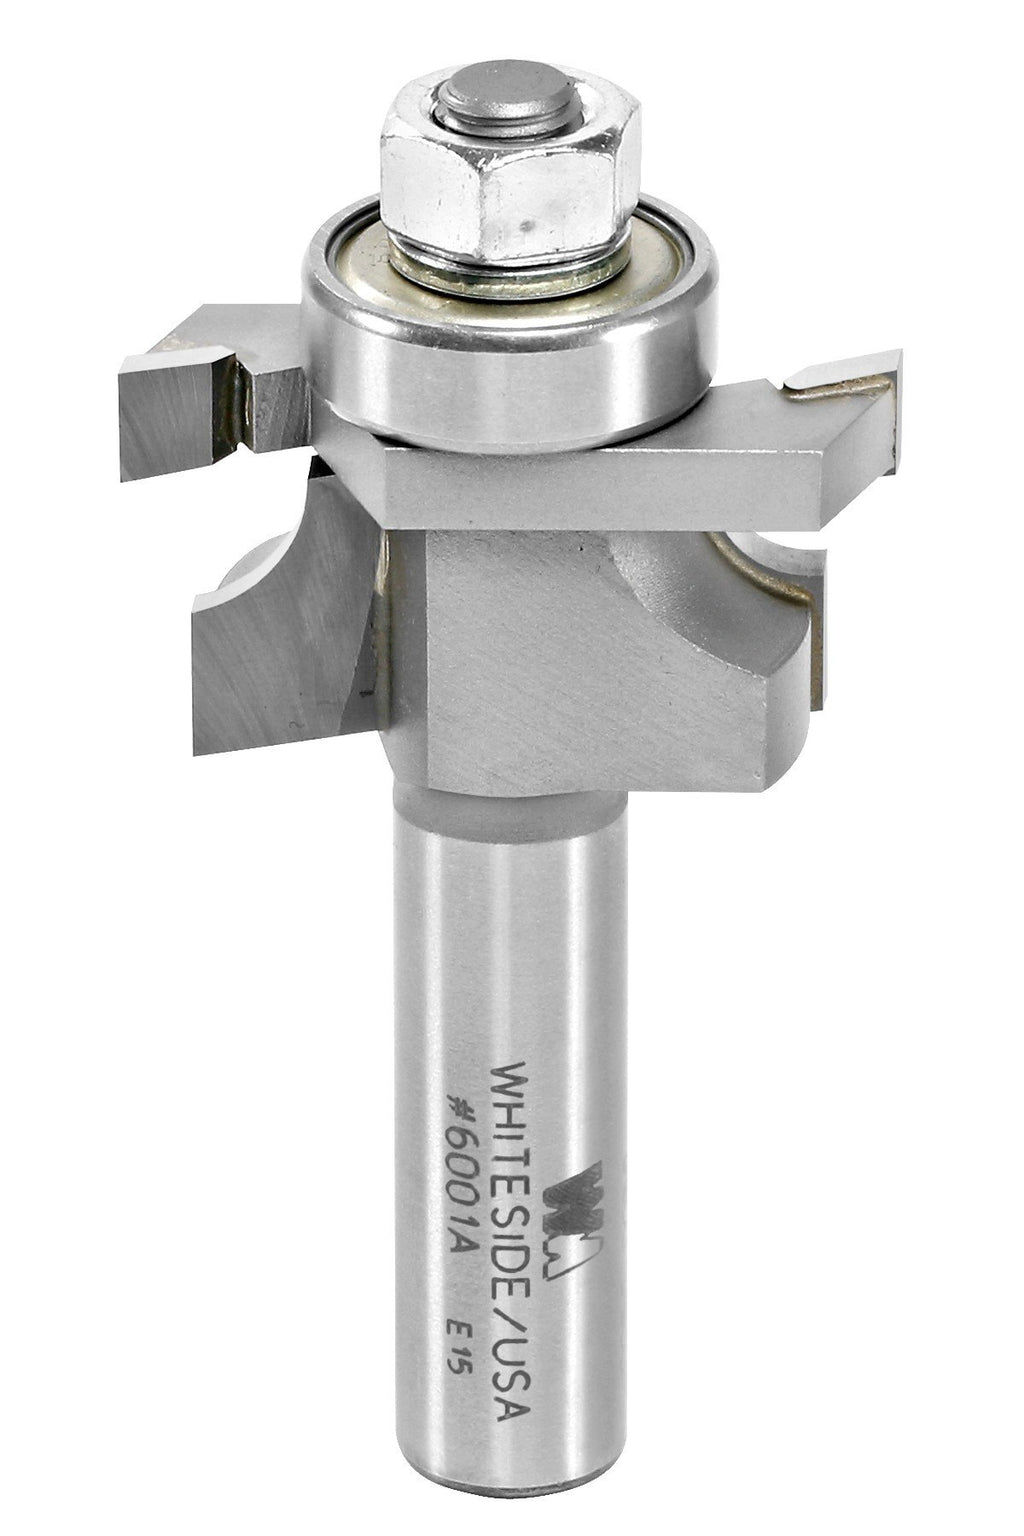 "Whiteside Whiteside Stile & Rail Router Bit  Set - Various Profiles -  1-5/8"" Large Diameter - 1/2"" Shank.,  - Ultimate Tools - 1"